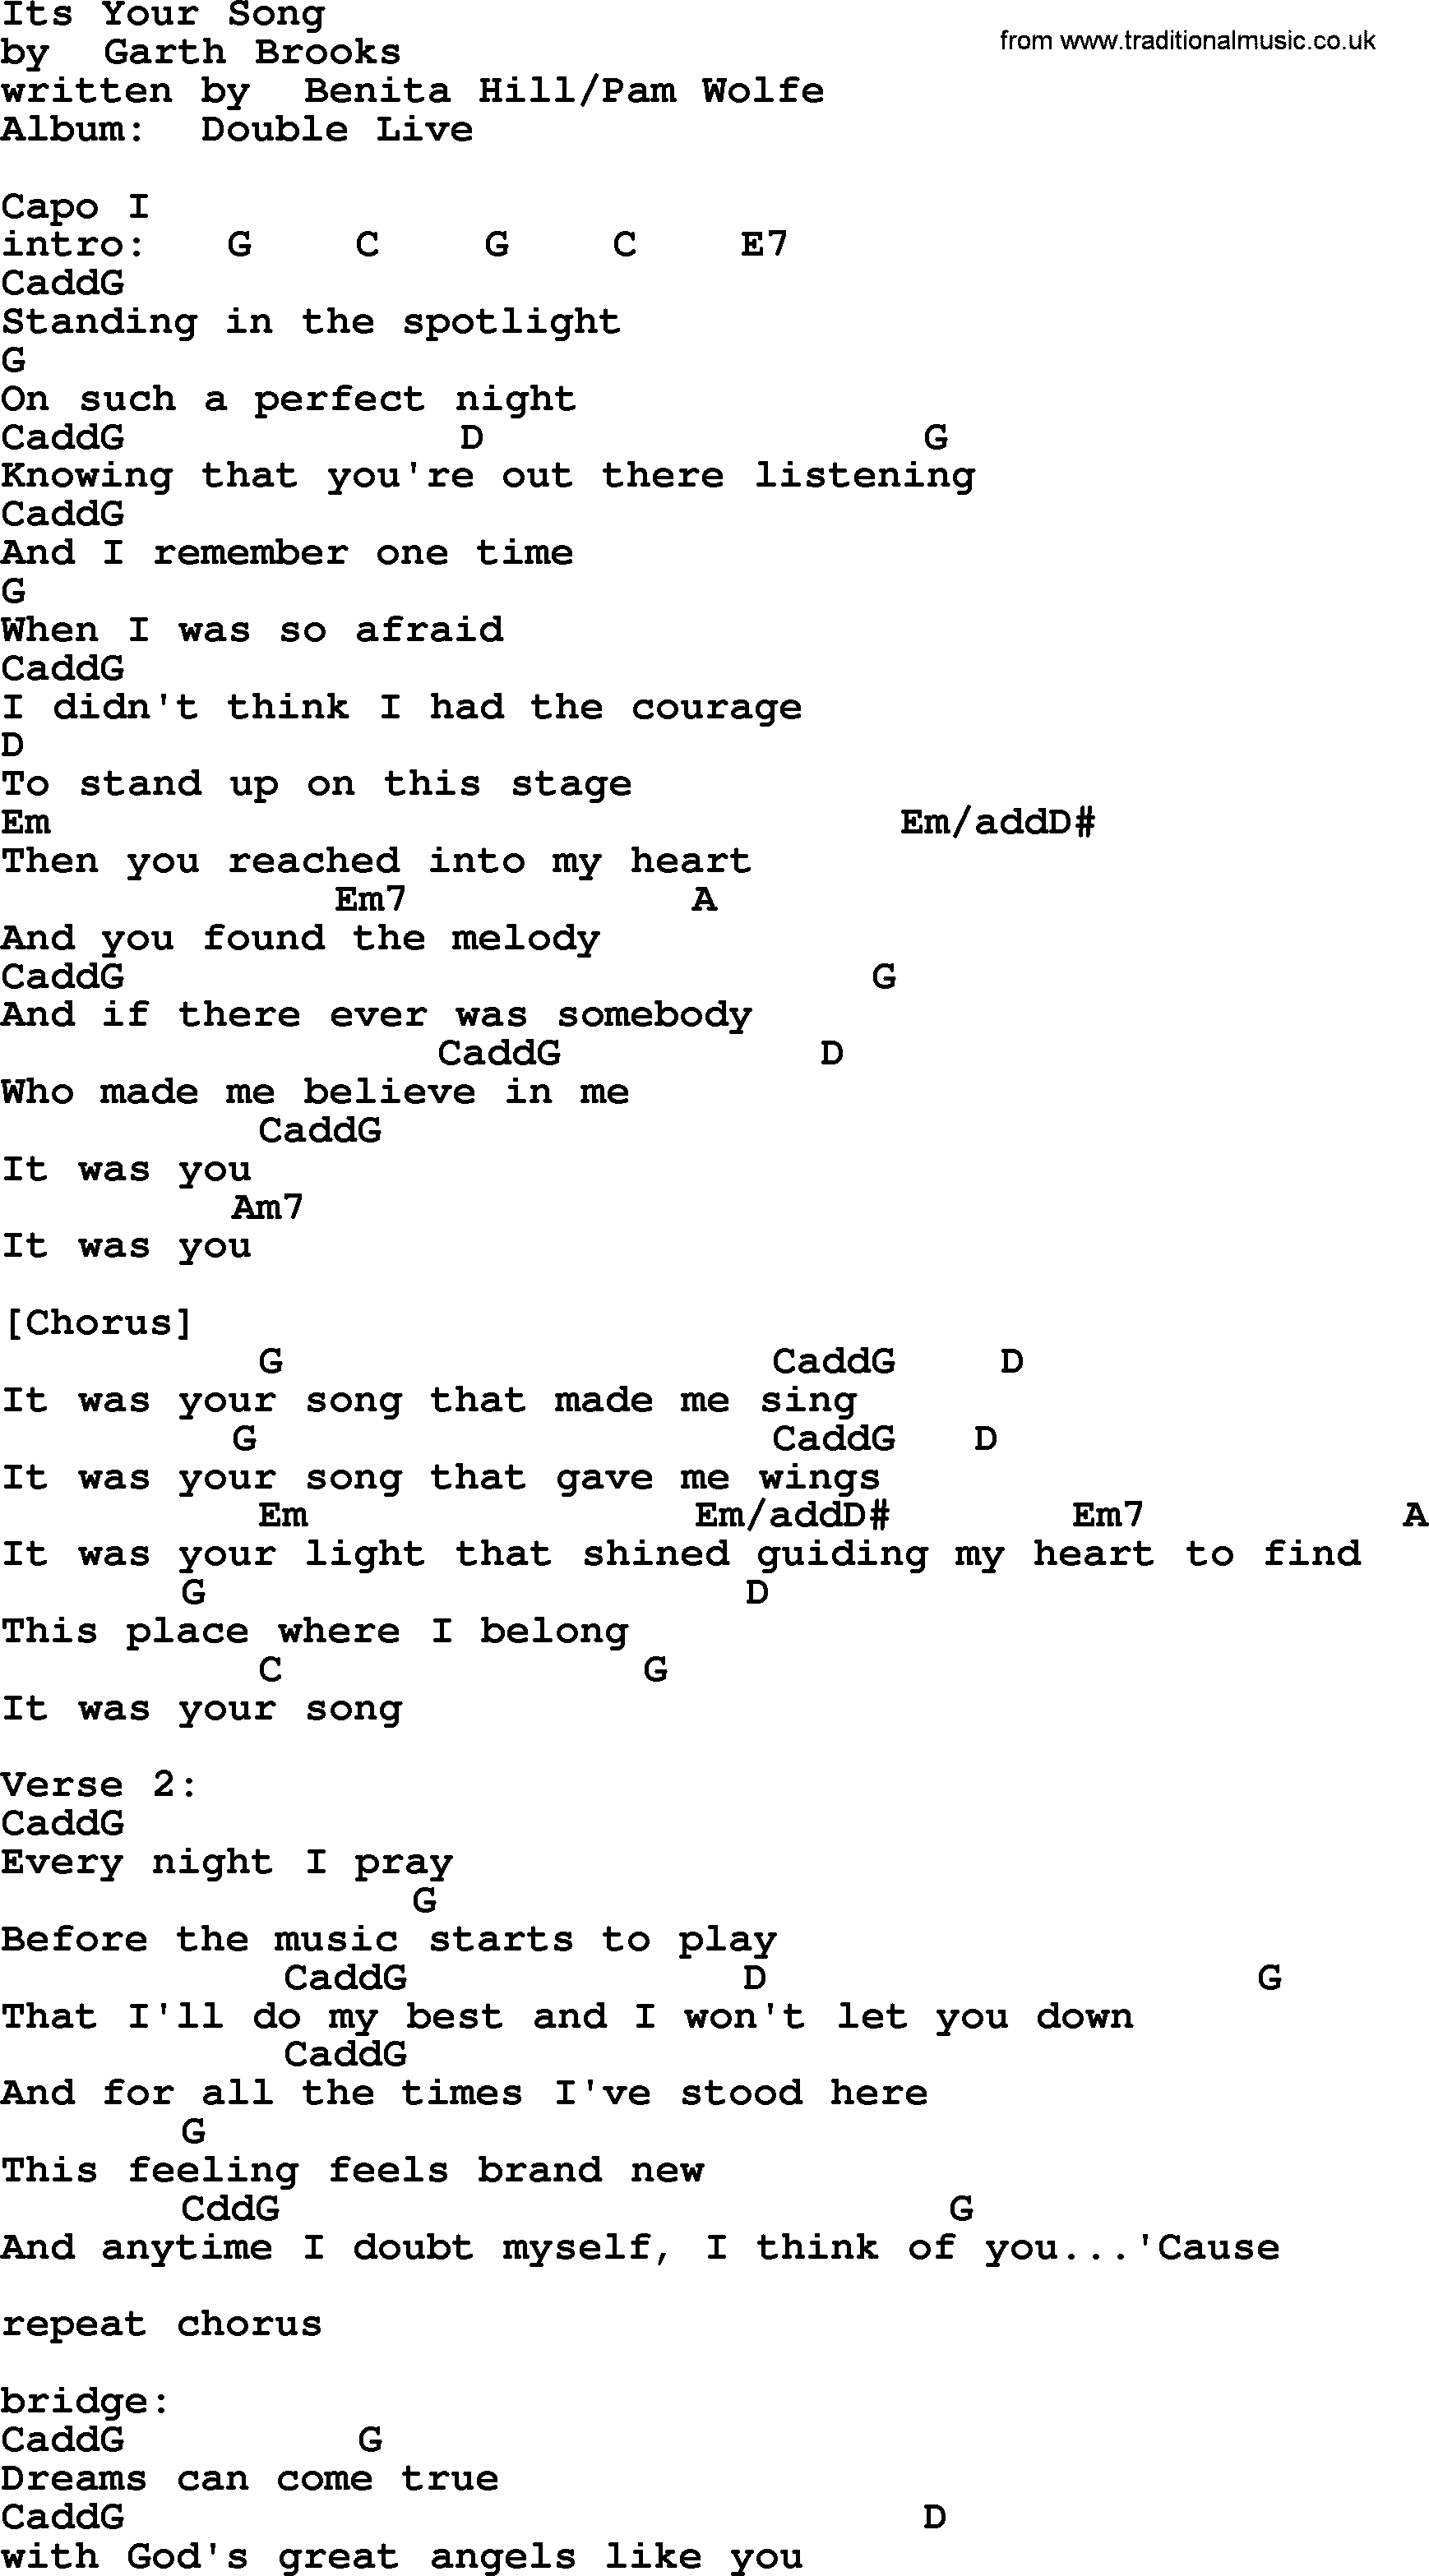 Its Your Song, by Garth Brooks - lyrics and chords